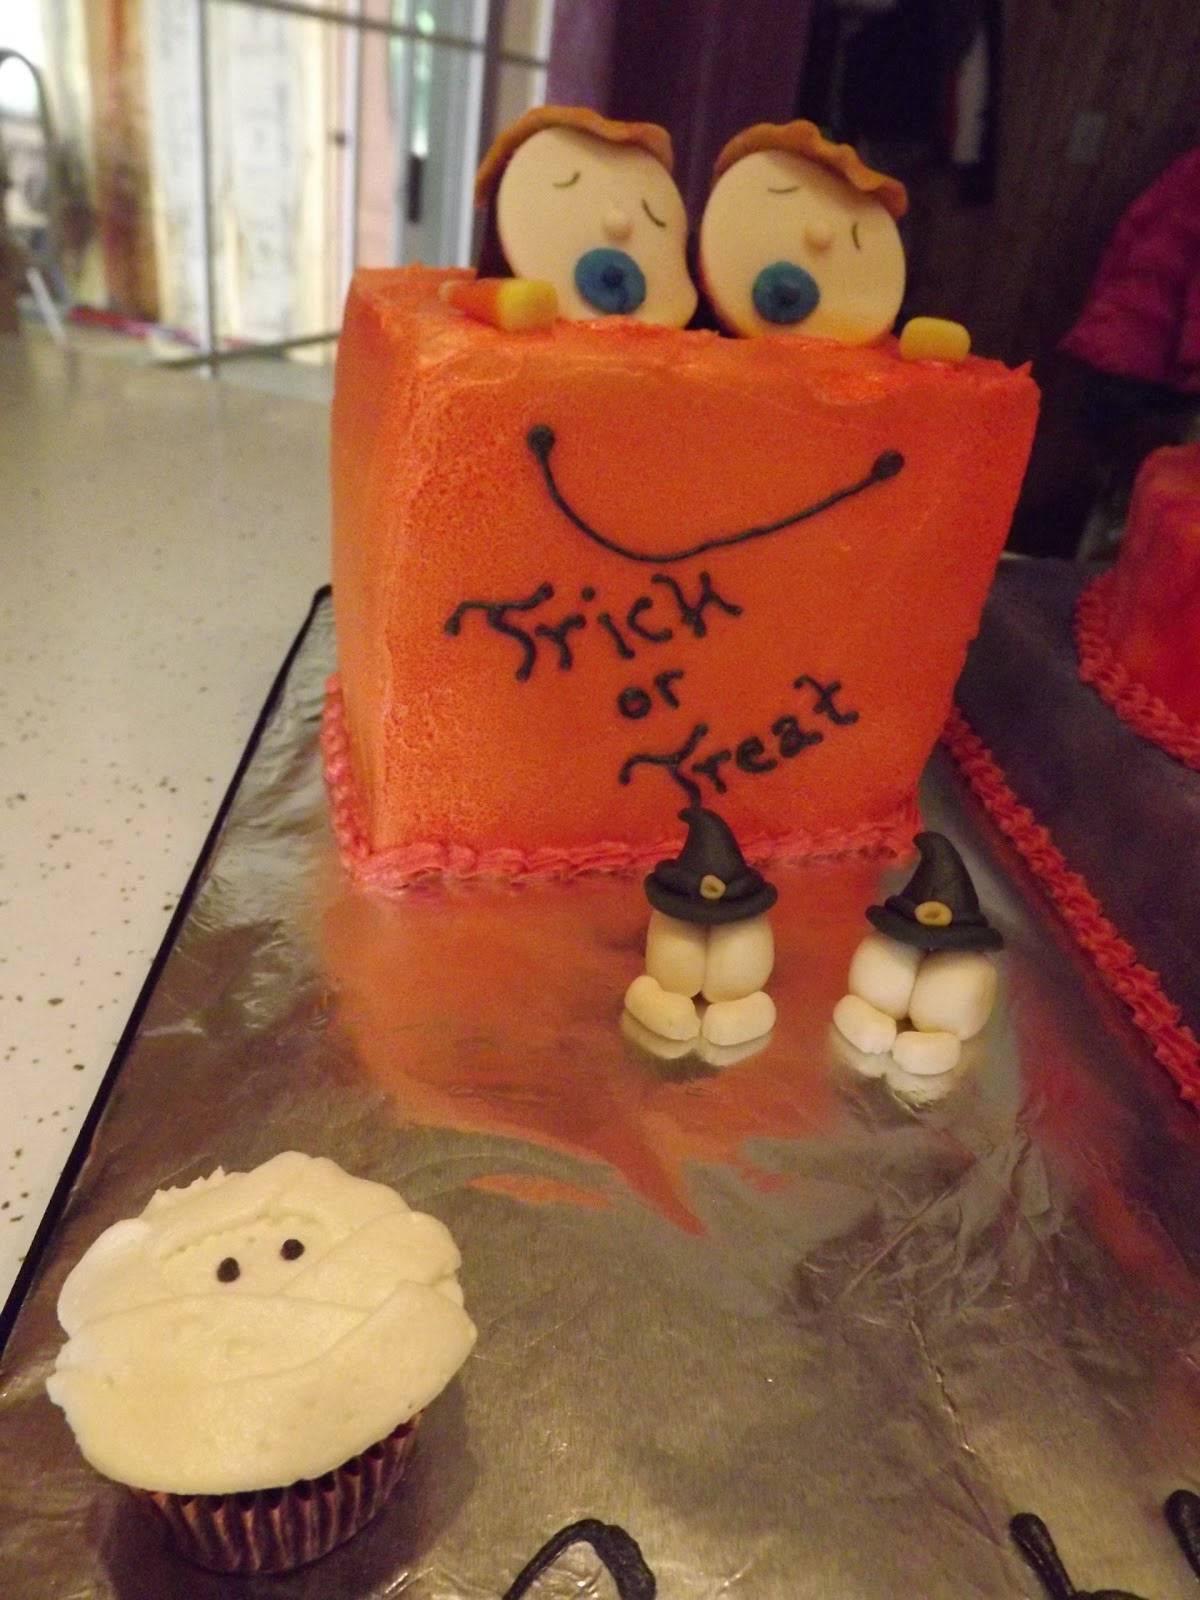 Halloween Baby Shower Cakes  The Crafty Couple Halloween Baby Shower Cake for Twins